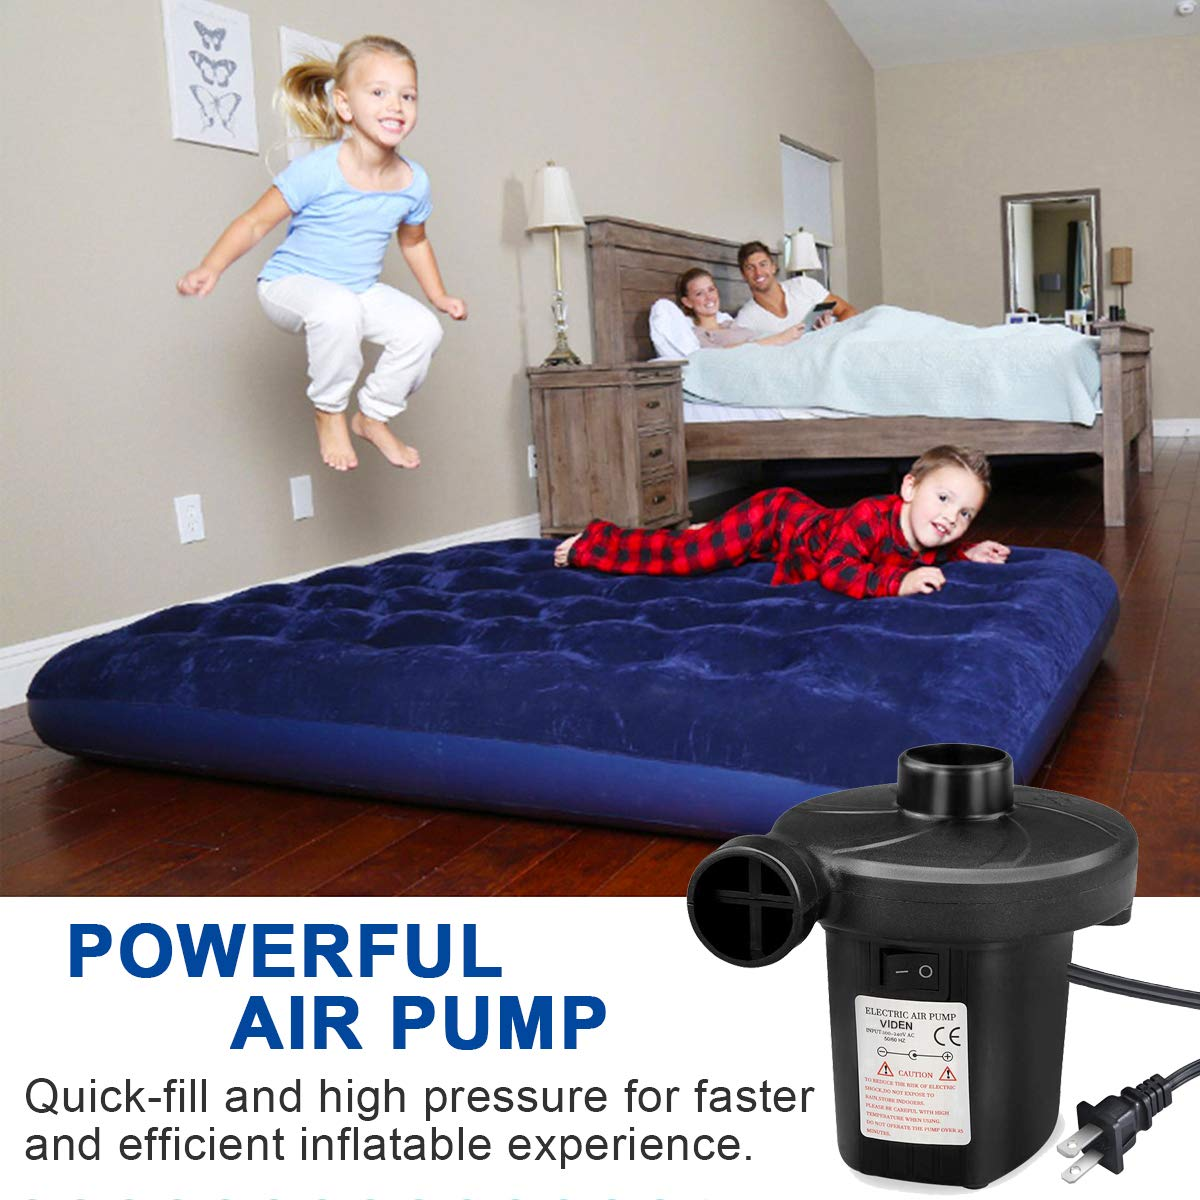 Camping,Sports VIDEN Air Pump for Inflatables,Electric Mattress Pumps,for Inflatable pool Kids Paddling Pools /& Toys,with 3 Nozzles,Quick-Fill 110-120V,Portable Airbed